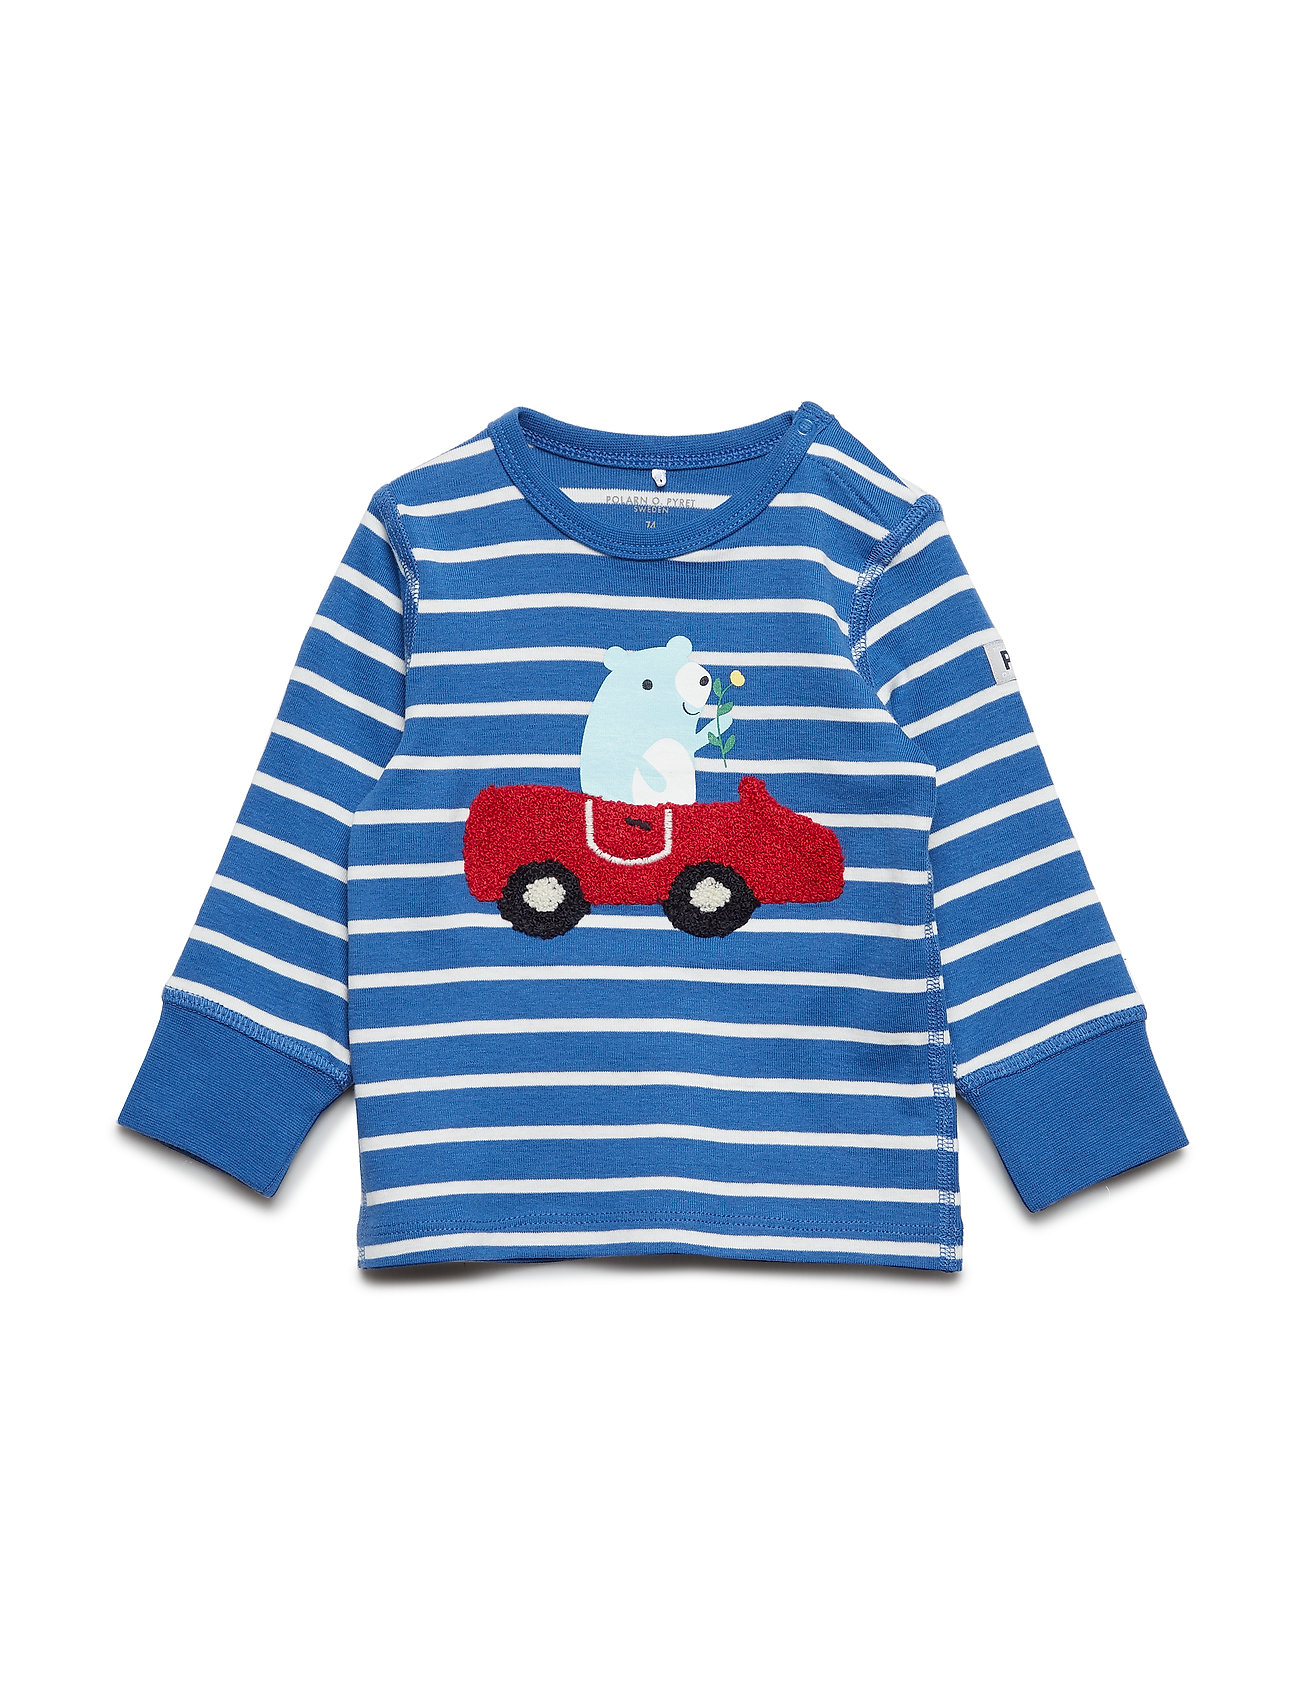 Polarn O. Pyret T-shirt Long Sleeve PO.P Stripe Baby - DELFT